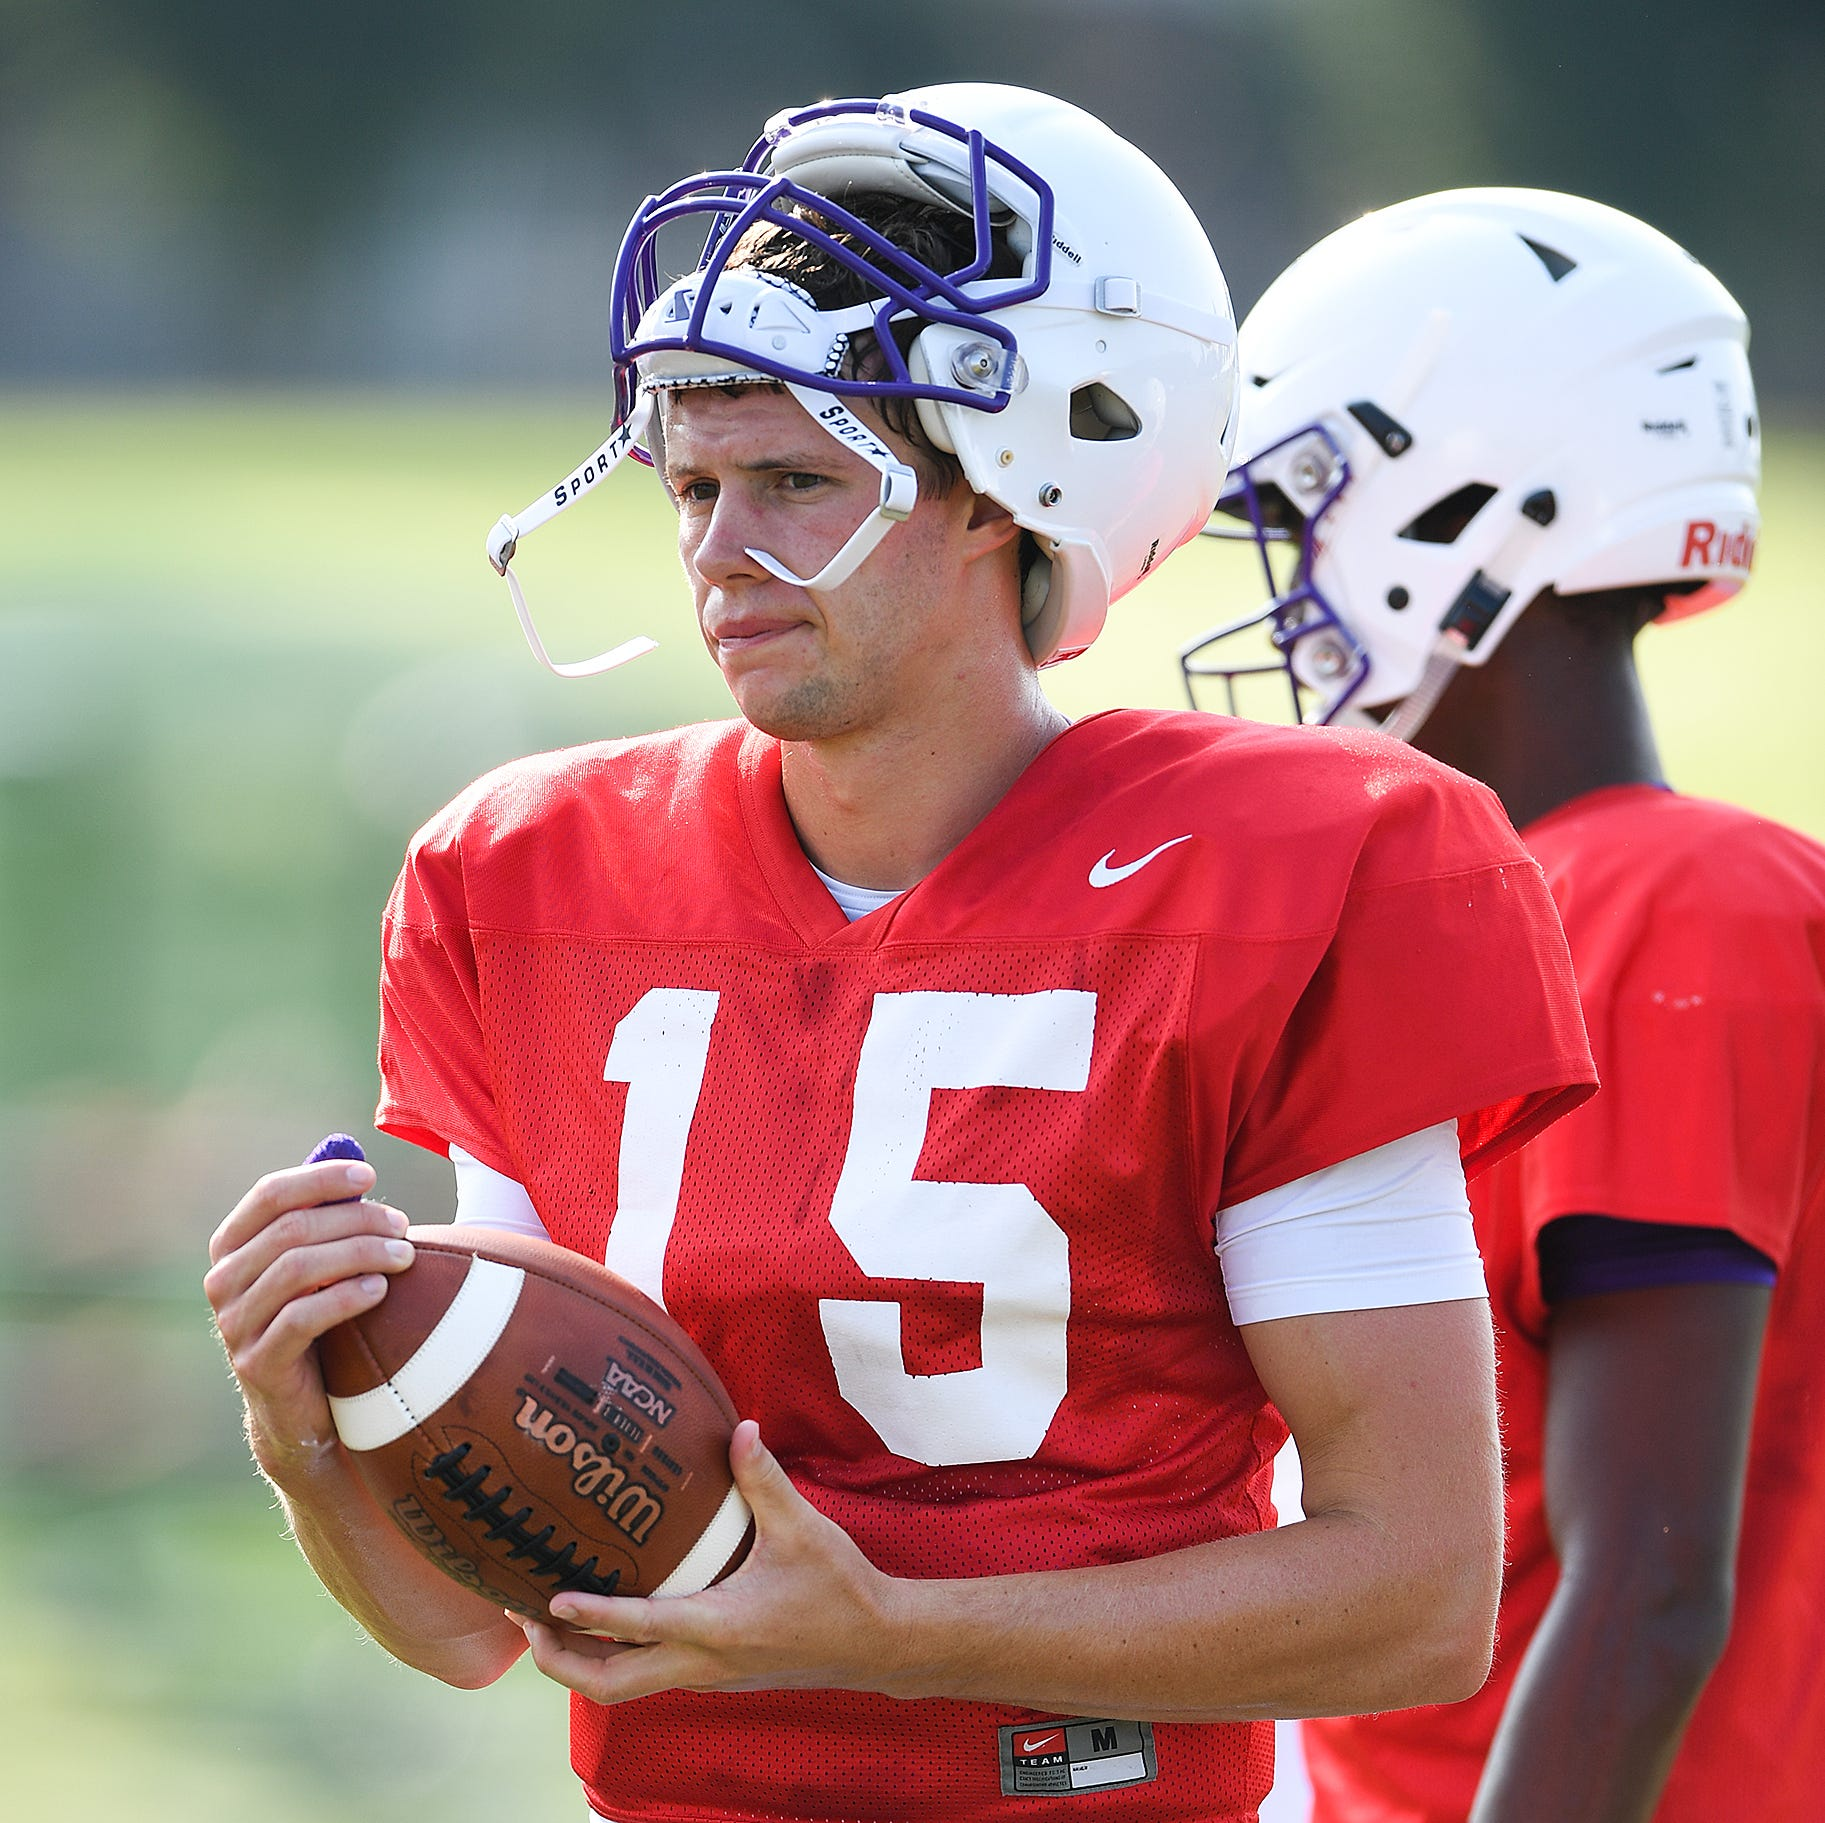 Clemson student Harris Roberts could start at quarterback for Furman